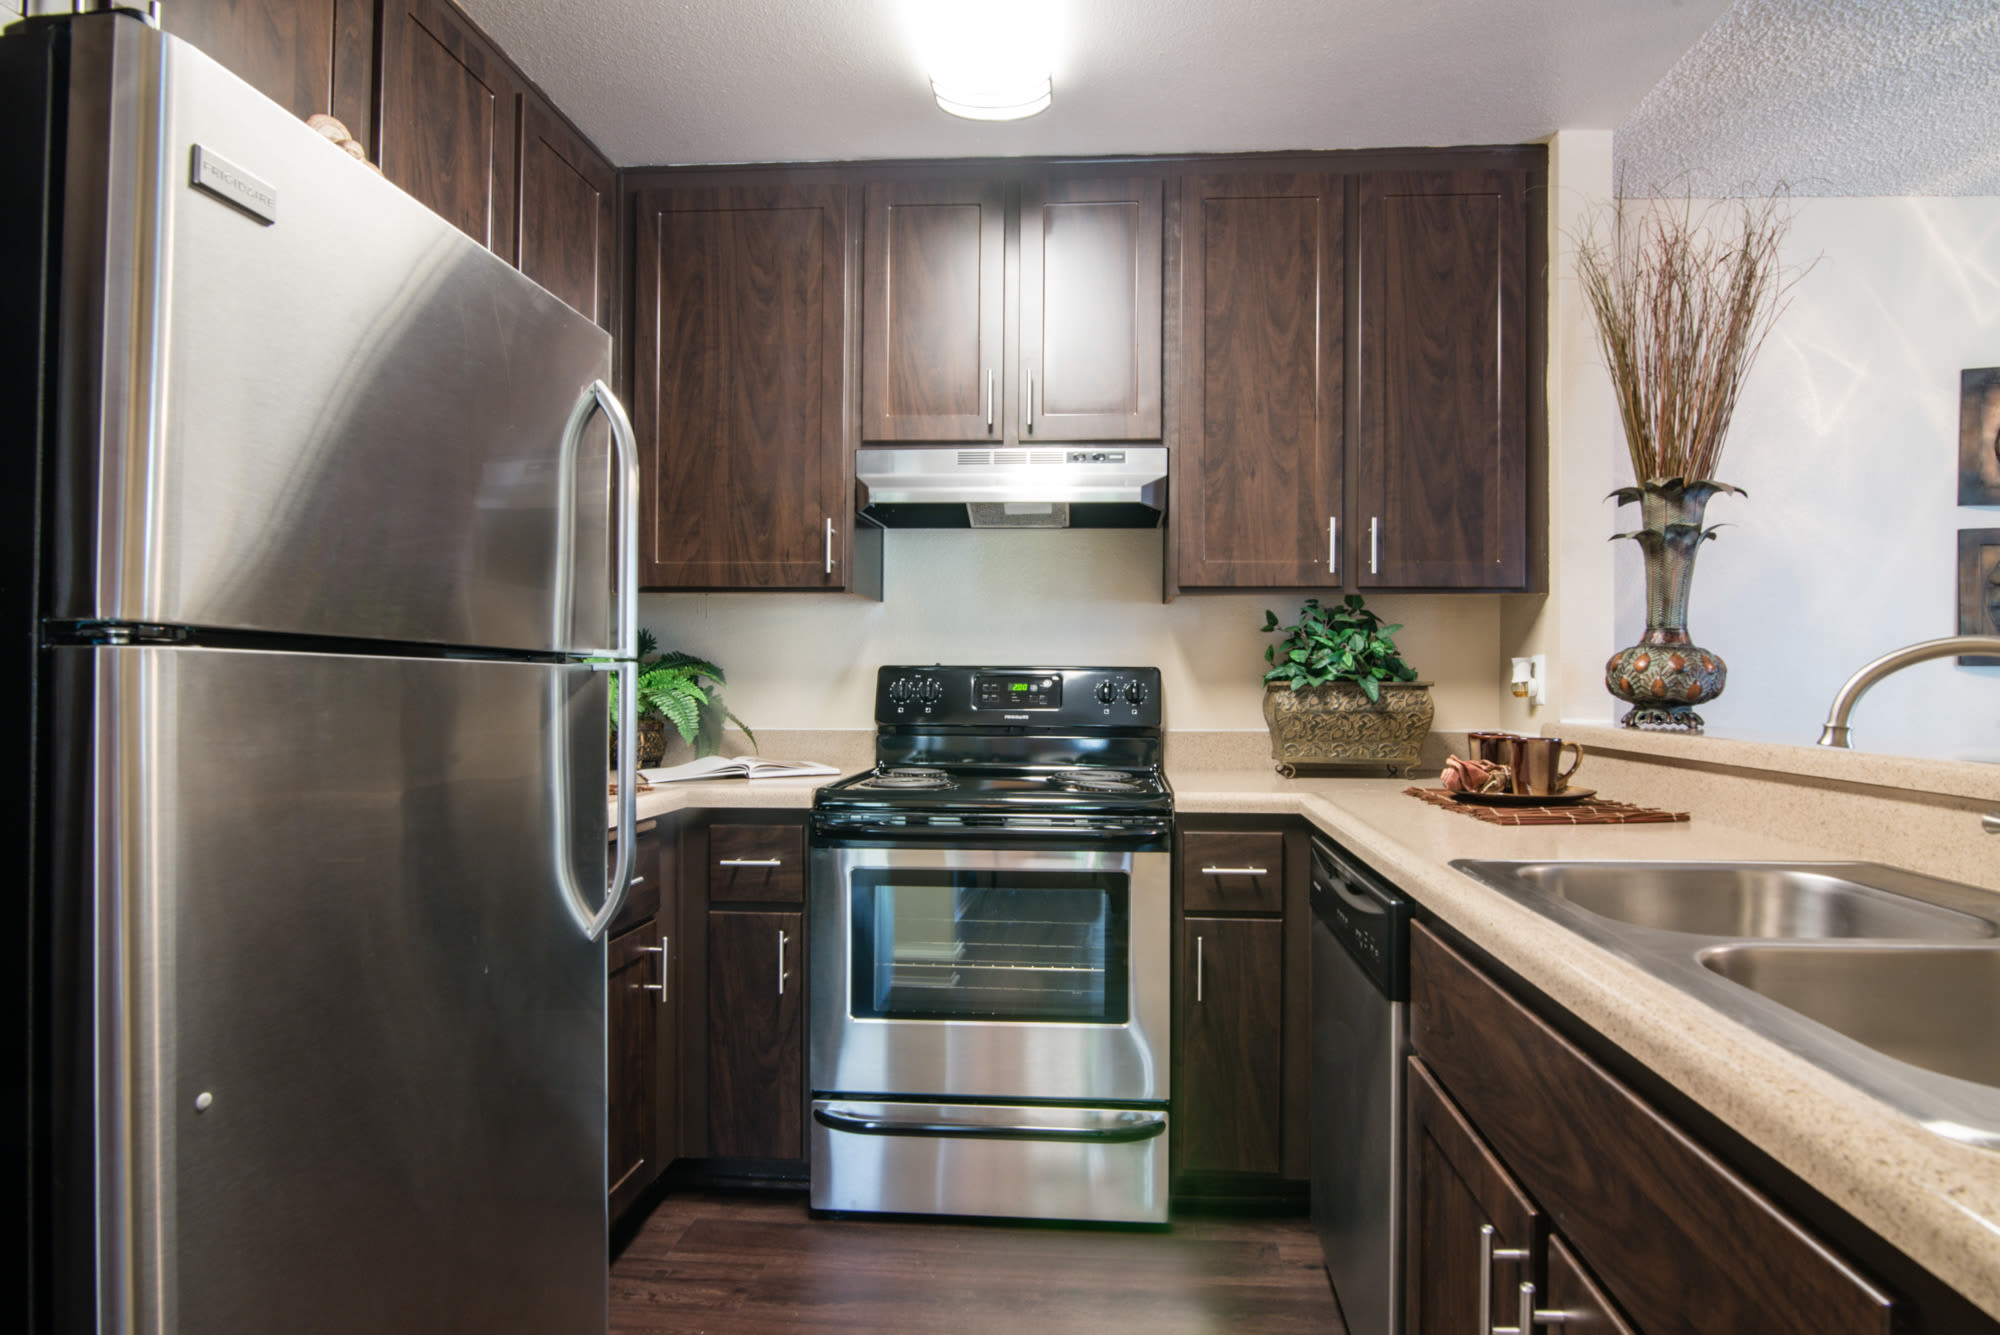 Apartment features at Lakeview Village Apartments in Spring Valley,